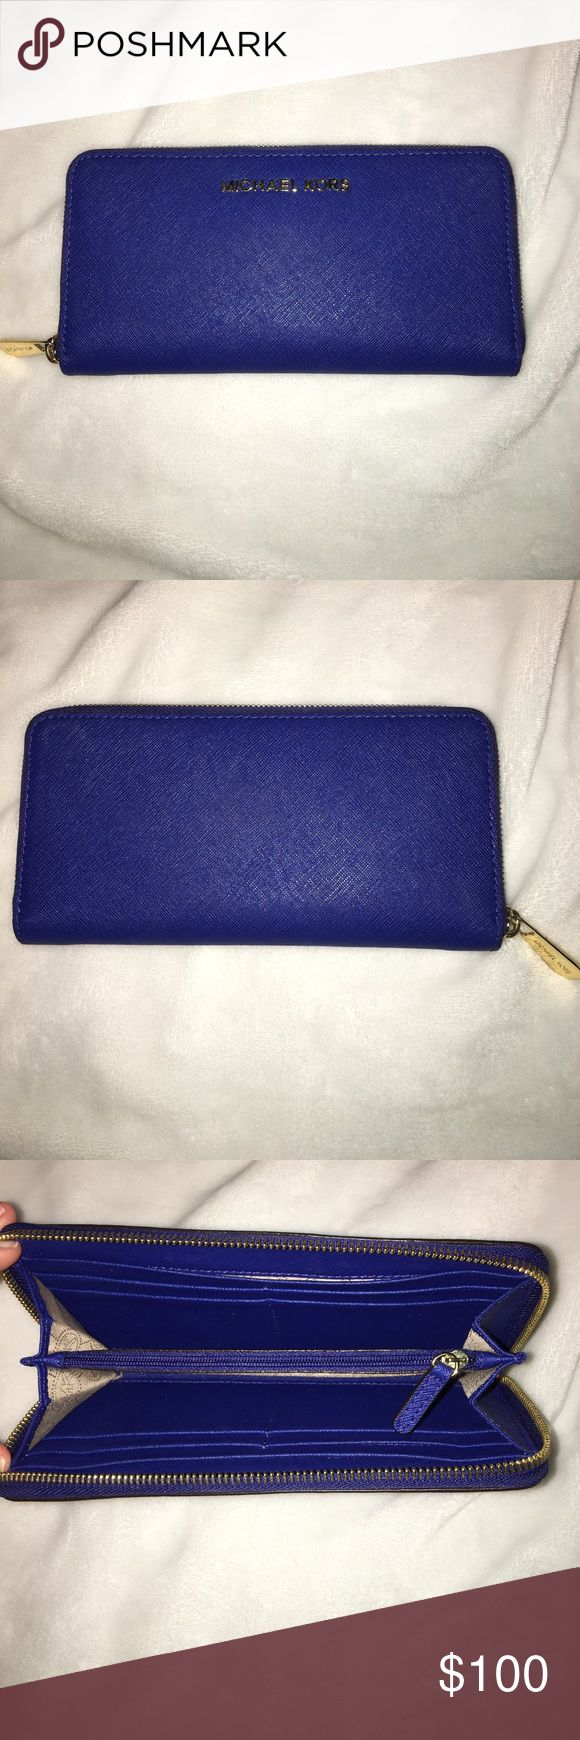 MICHAEL KORS WALLET Jet Set Travel Saffiano Leather Continental Wallet in Electric Blue. Looks brand new, no damage Michael Kors Bags Wallets